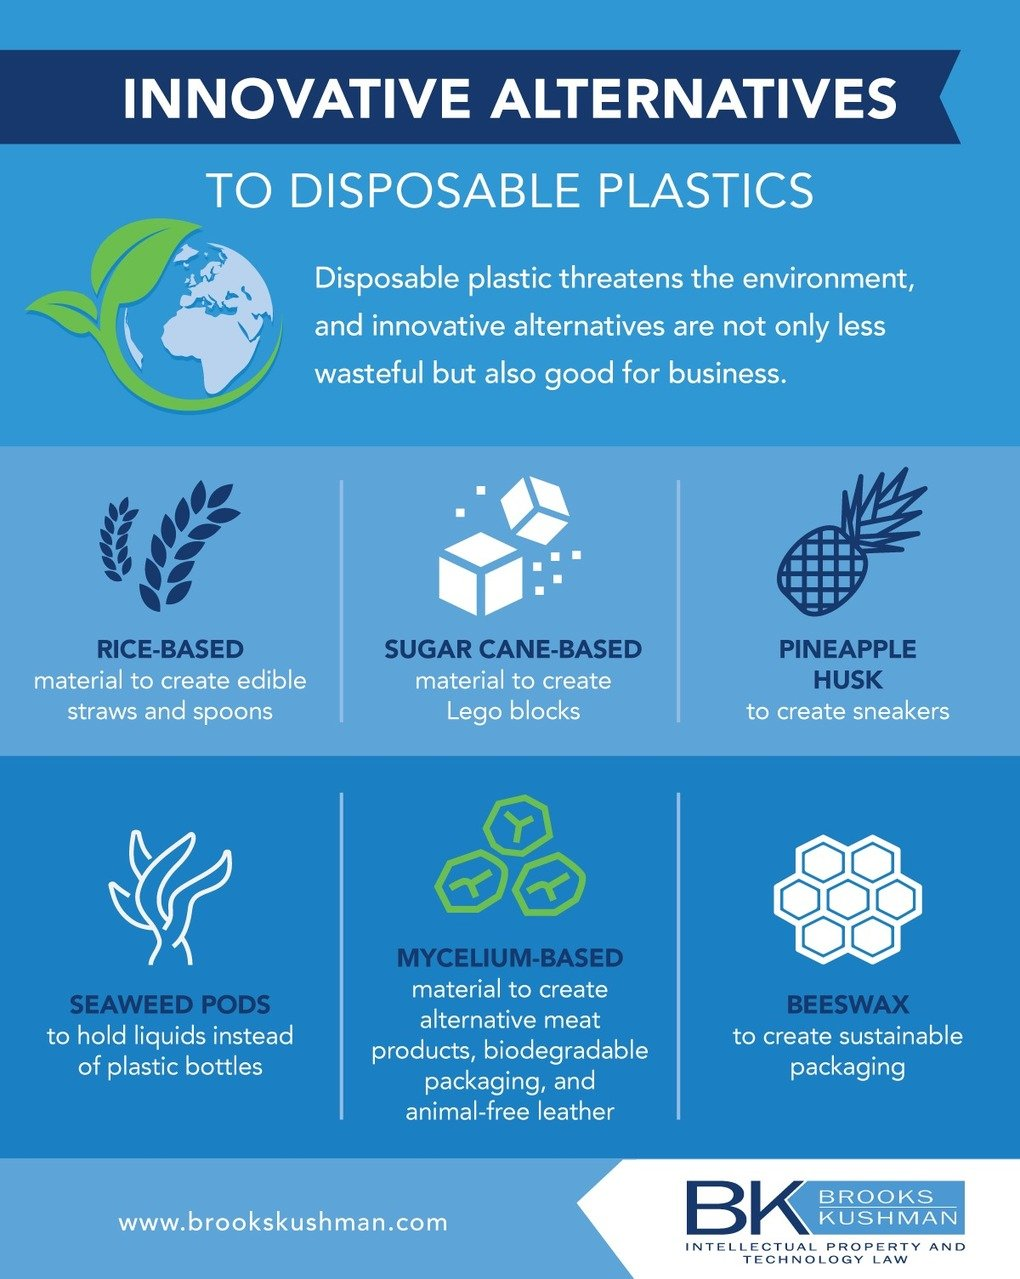 , Innovative Sustainable Materials, Products, And Production Methods Are At The Forefront Of The Circular Economy, The Circular Economy, The Circular Economy